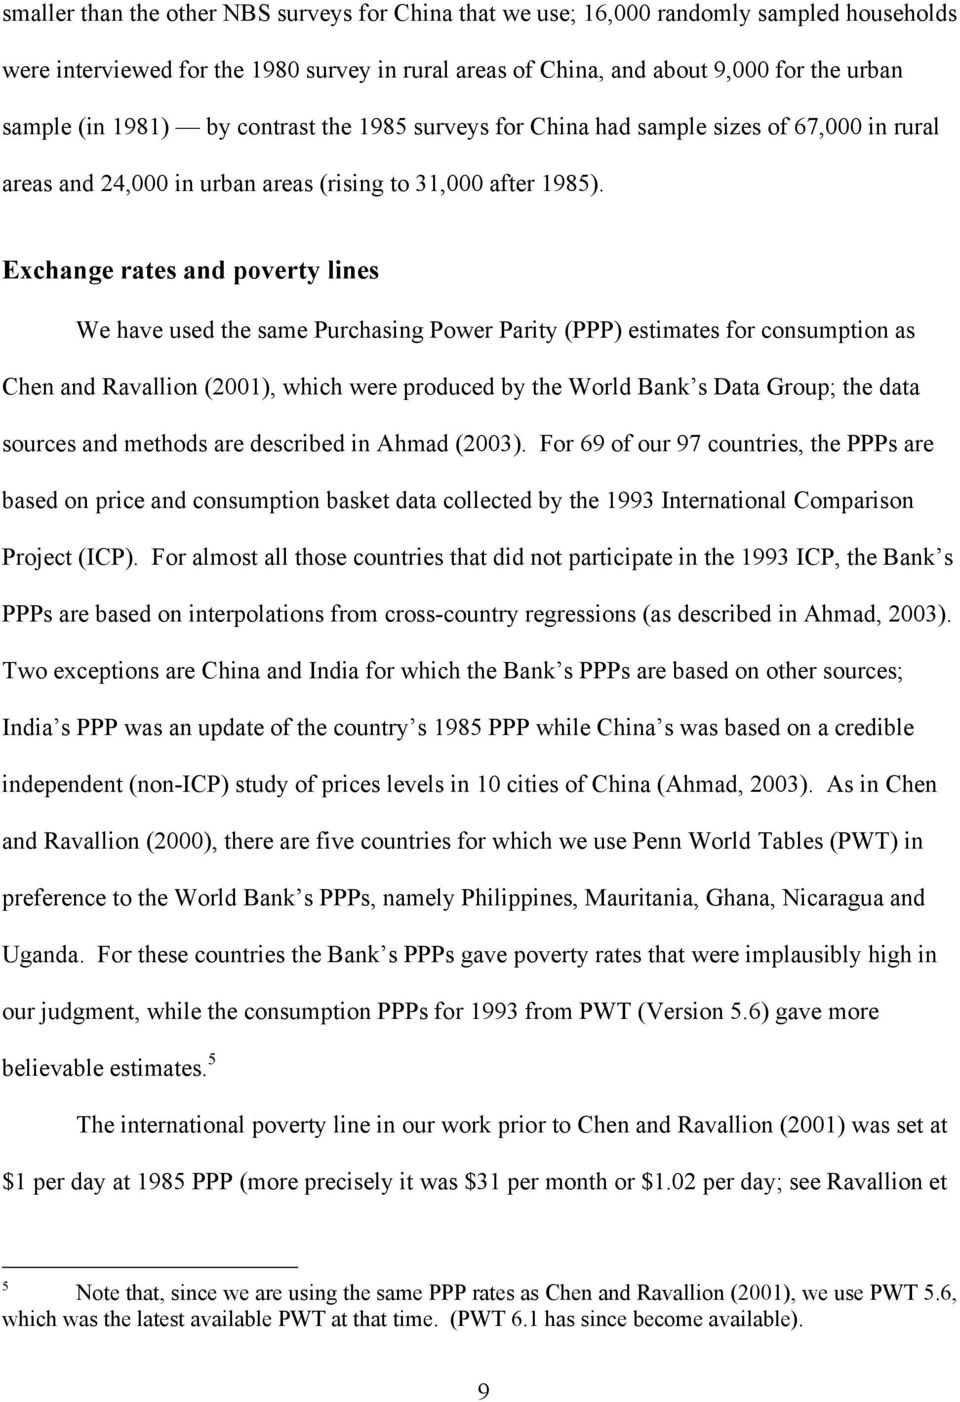 Exchange rates and poverty lines We have used the same Purchasing Power Parity (PPP) estimates for consumption as Chen and Ravallion (2001), which were produced by the World Bank s Data Group; the